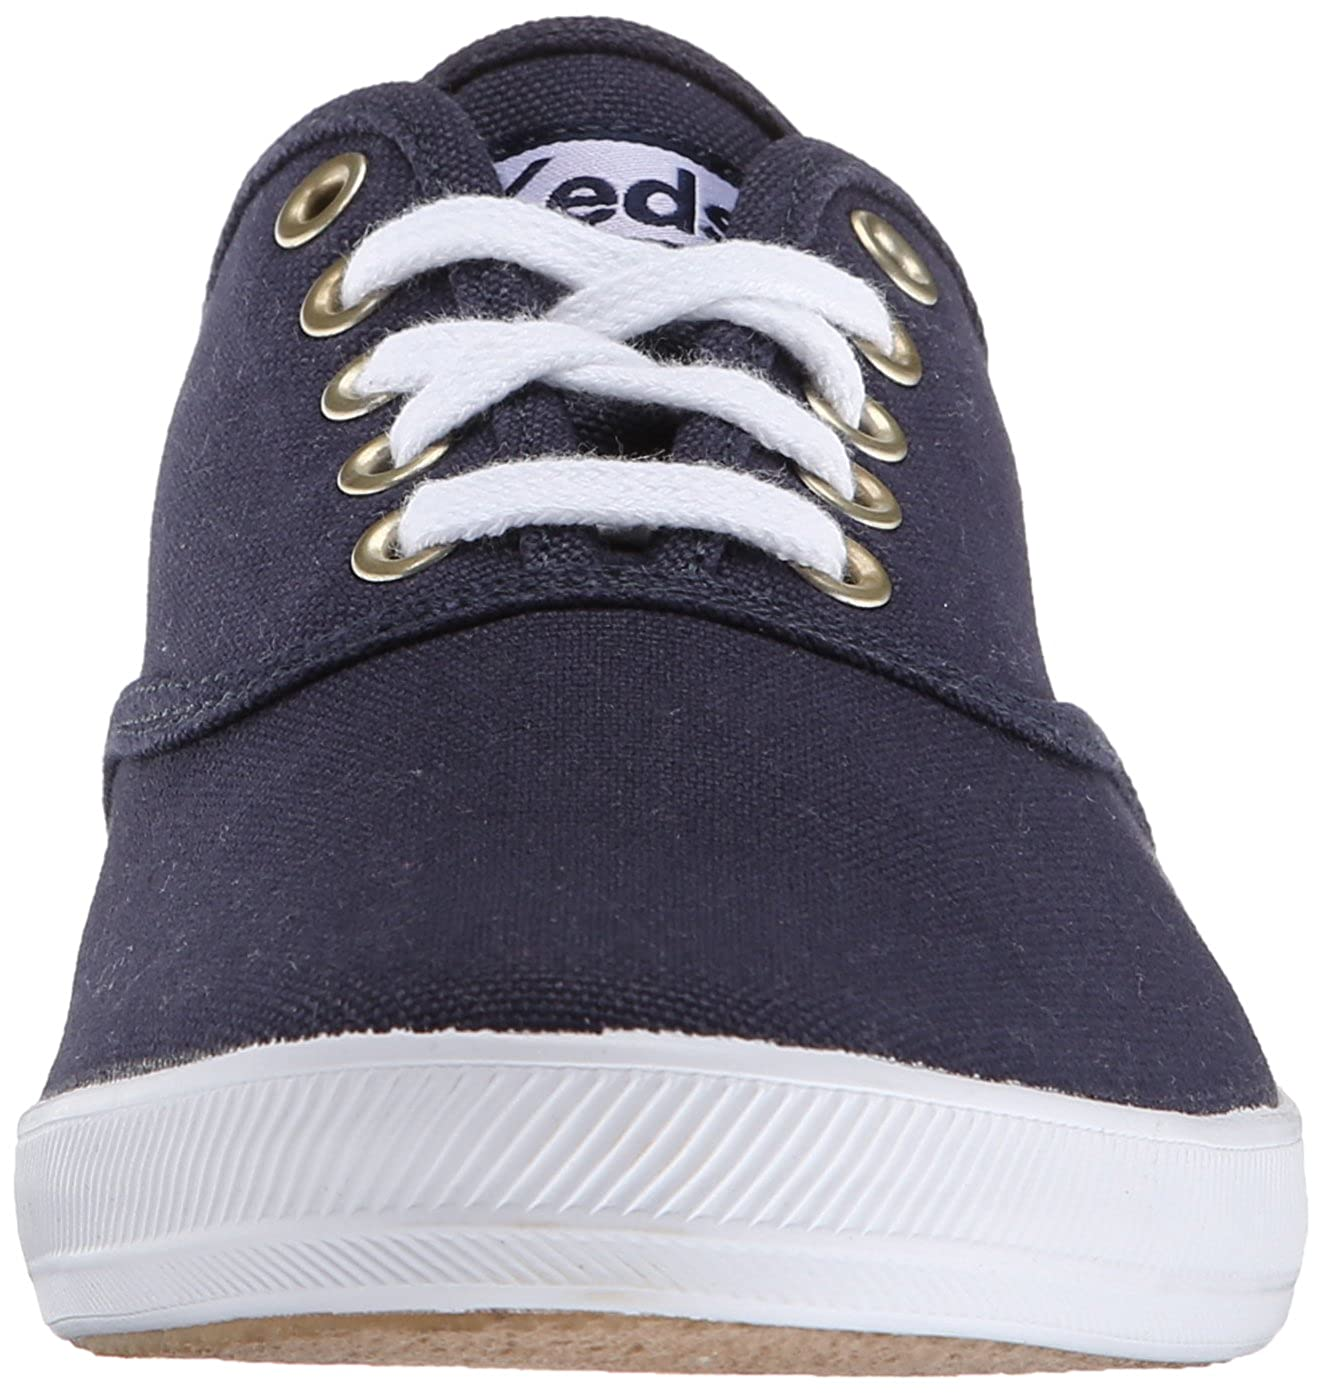 2efd116ca Amazon.com  Keds Men s Champion Original Canvas Sneaker  Shoes